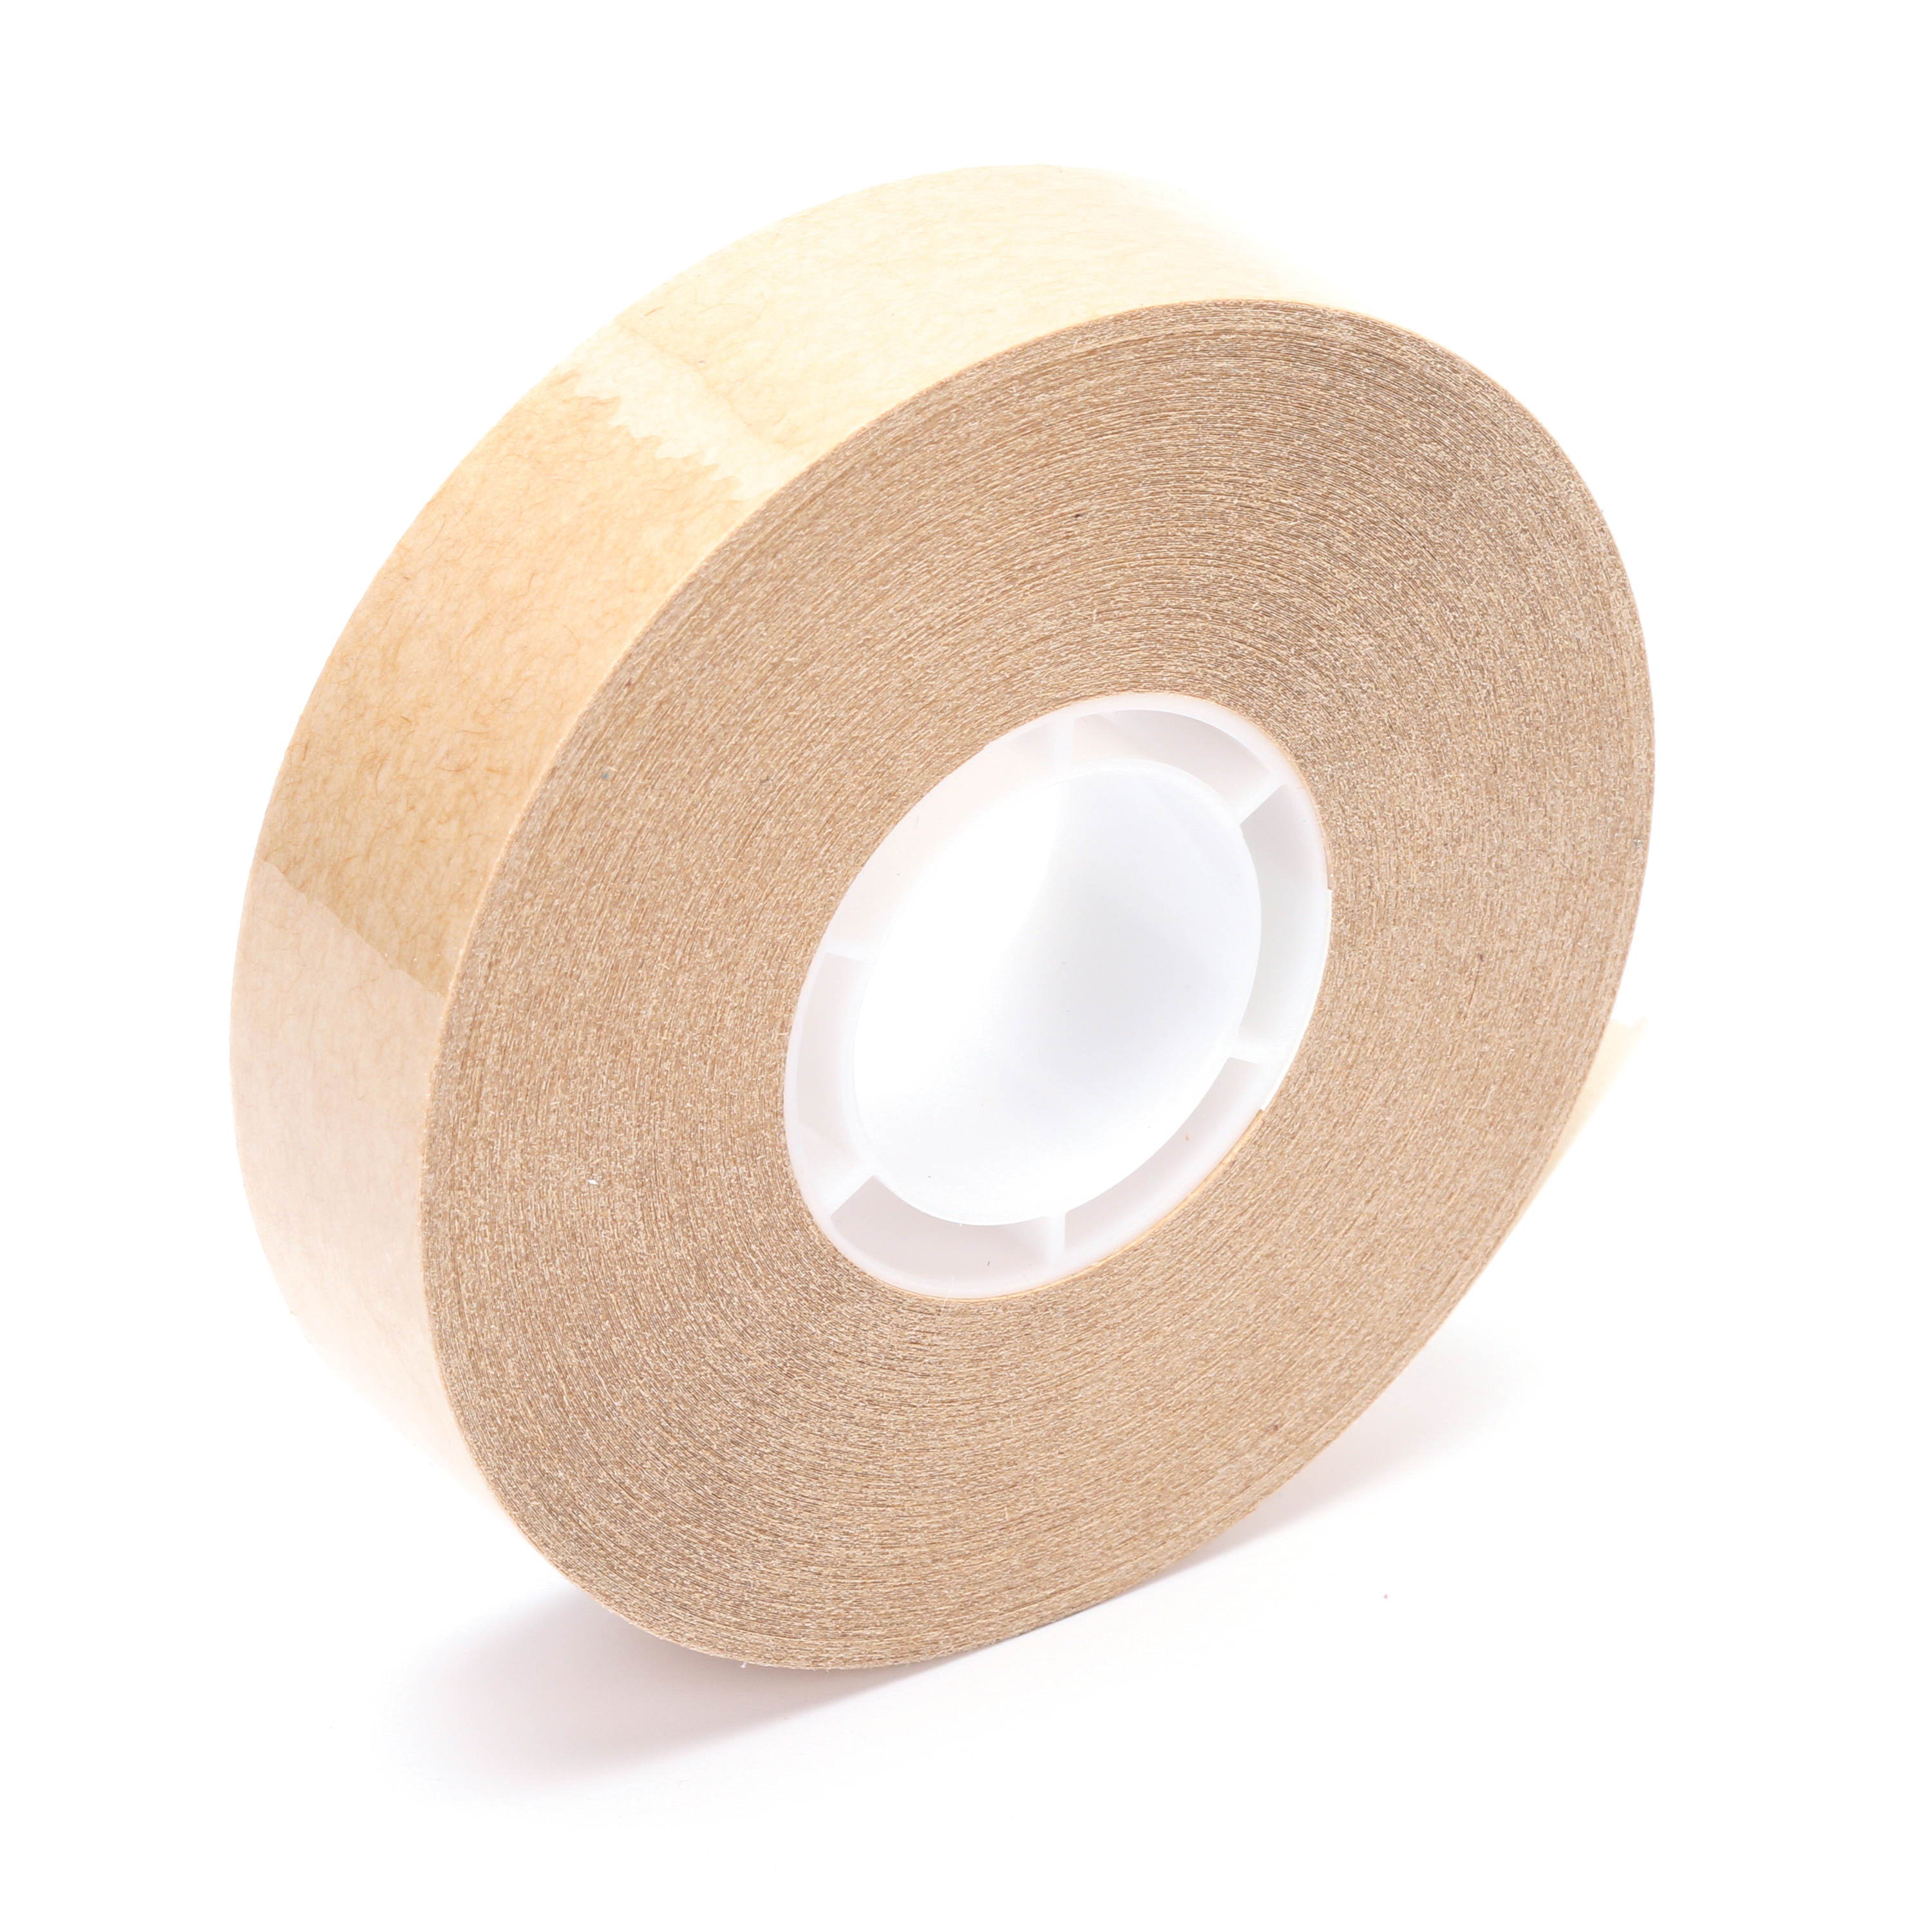 3M™ 021200-83858 Utility-Grade Adhesive Transfer Tape, 36 yd L x 3/4 in W, 2 mil THK, 1.7 mil 400 Acrylic Adhesive, Clear